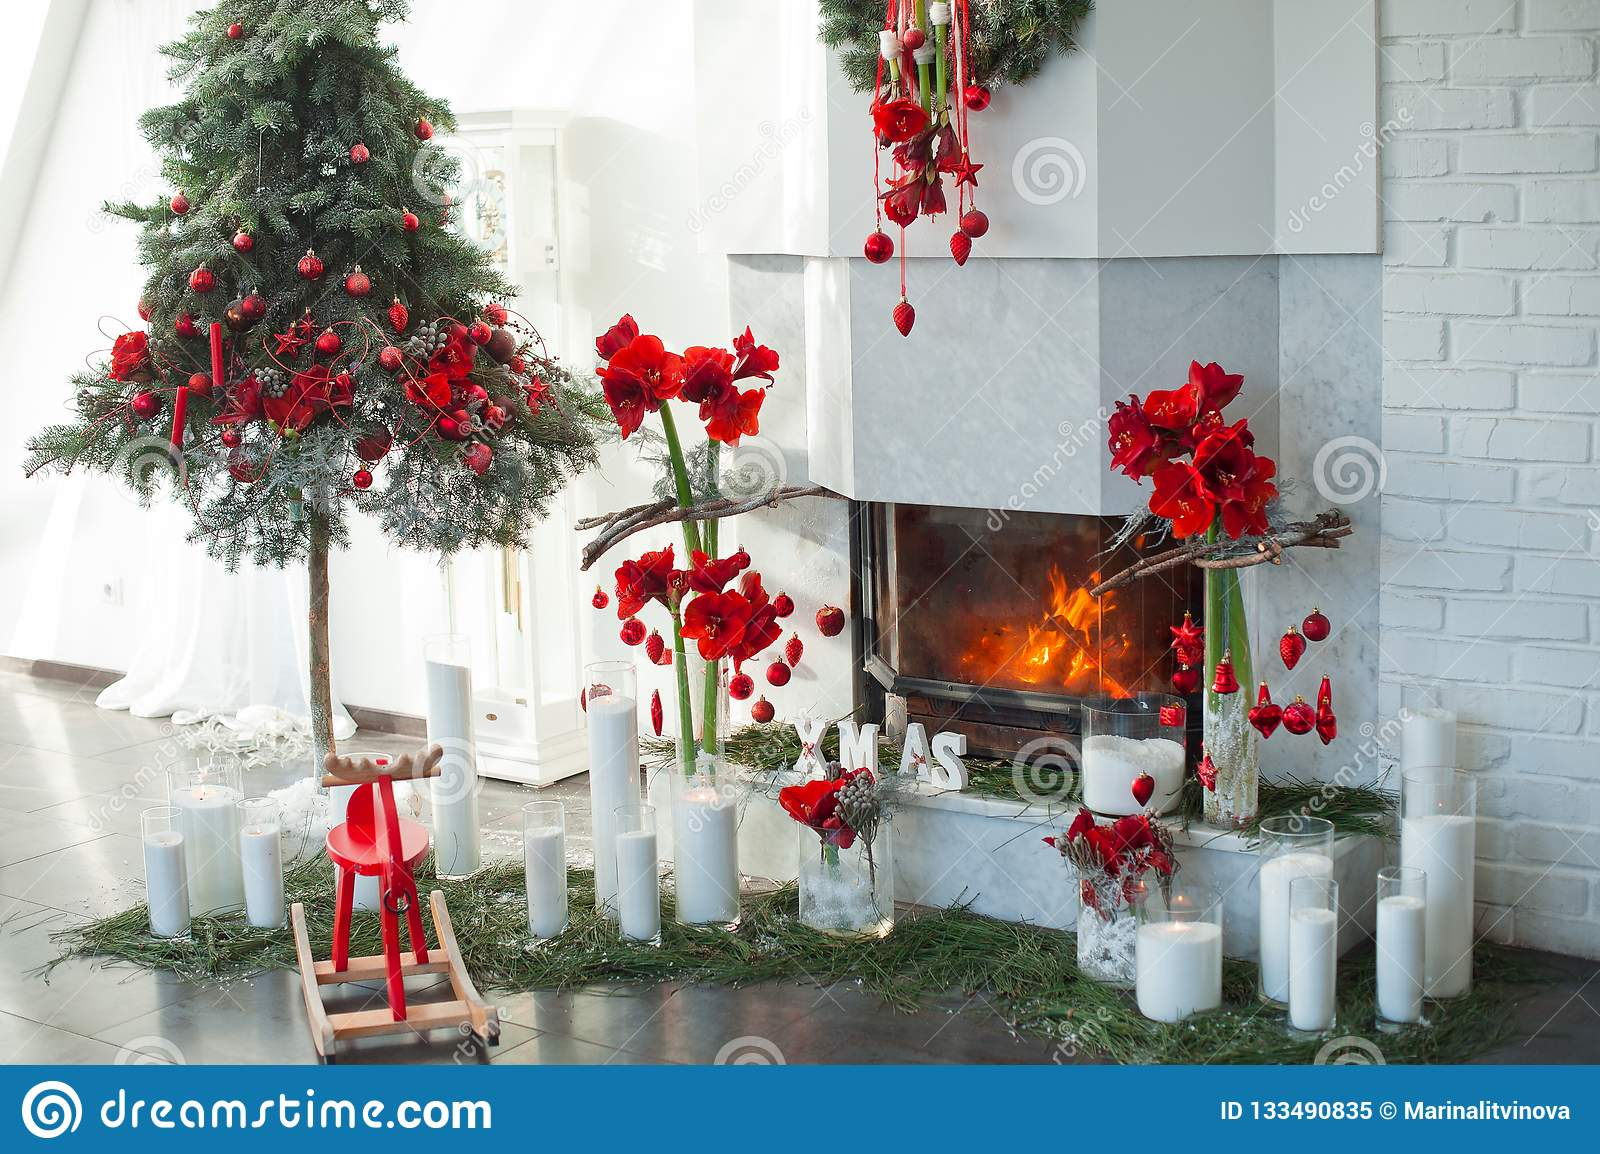 The Idea Of A Christmas Fireplace Decor Stock Image Image Of